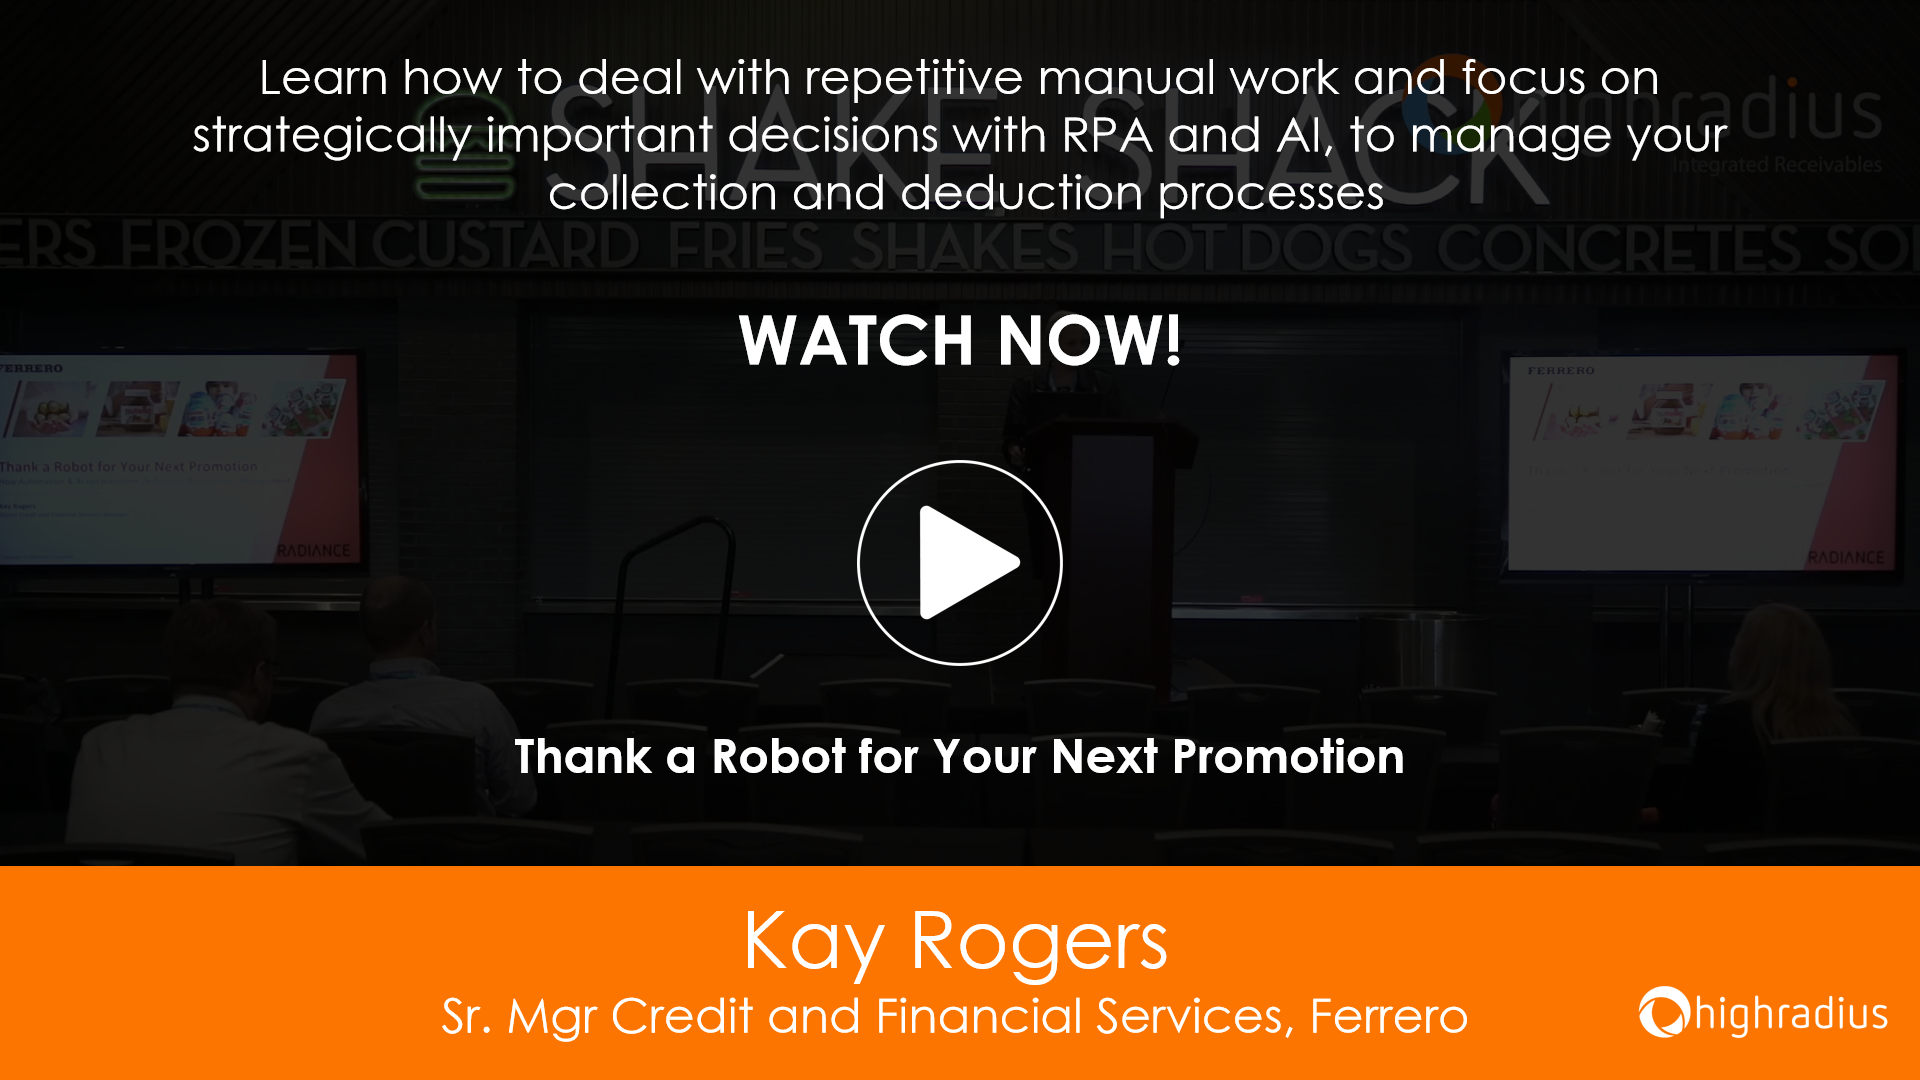 Thank a Robot for Your Next Promotion